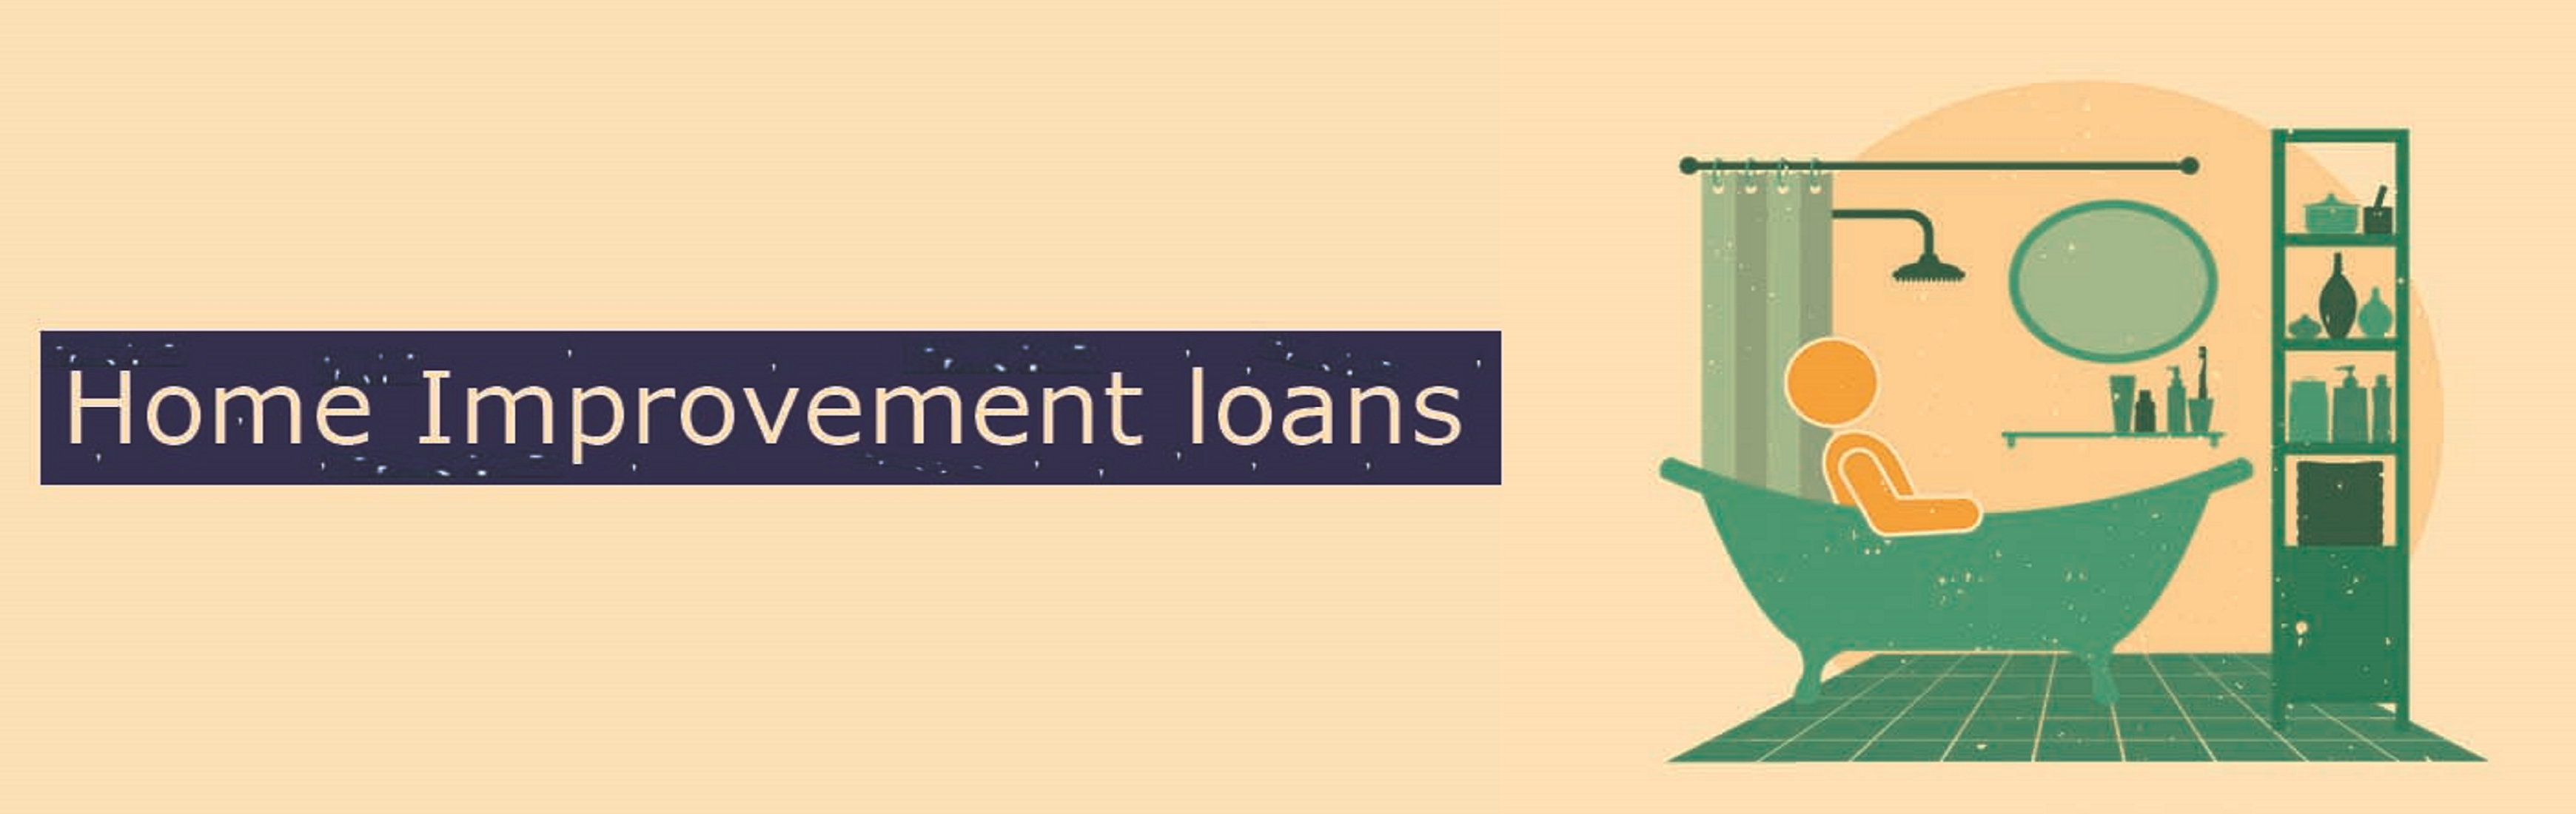 full size home-improvement-loans-banner